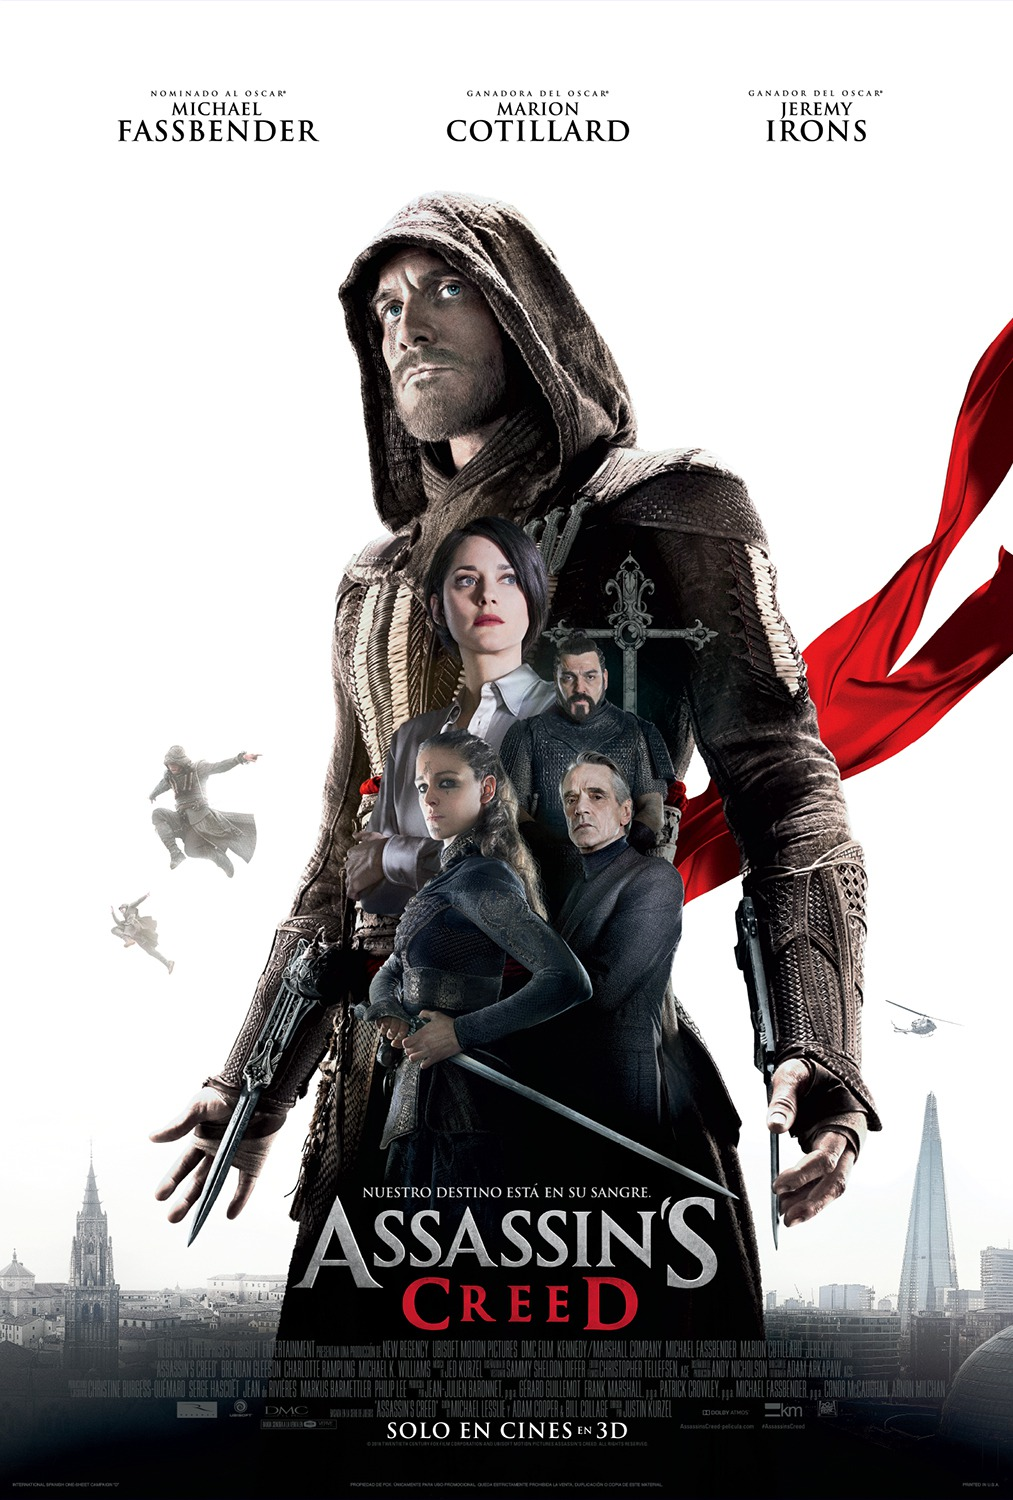 assassins-creed-international-16novembro2016